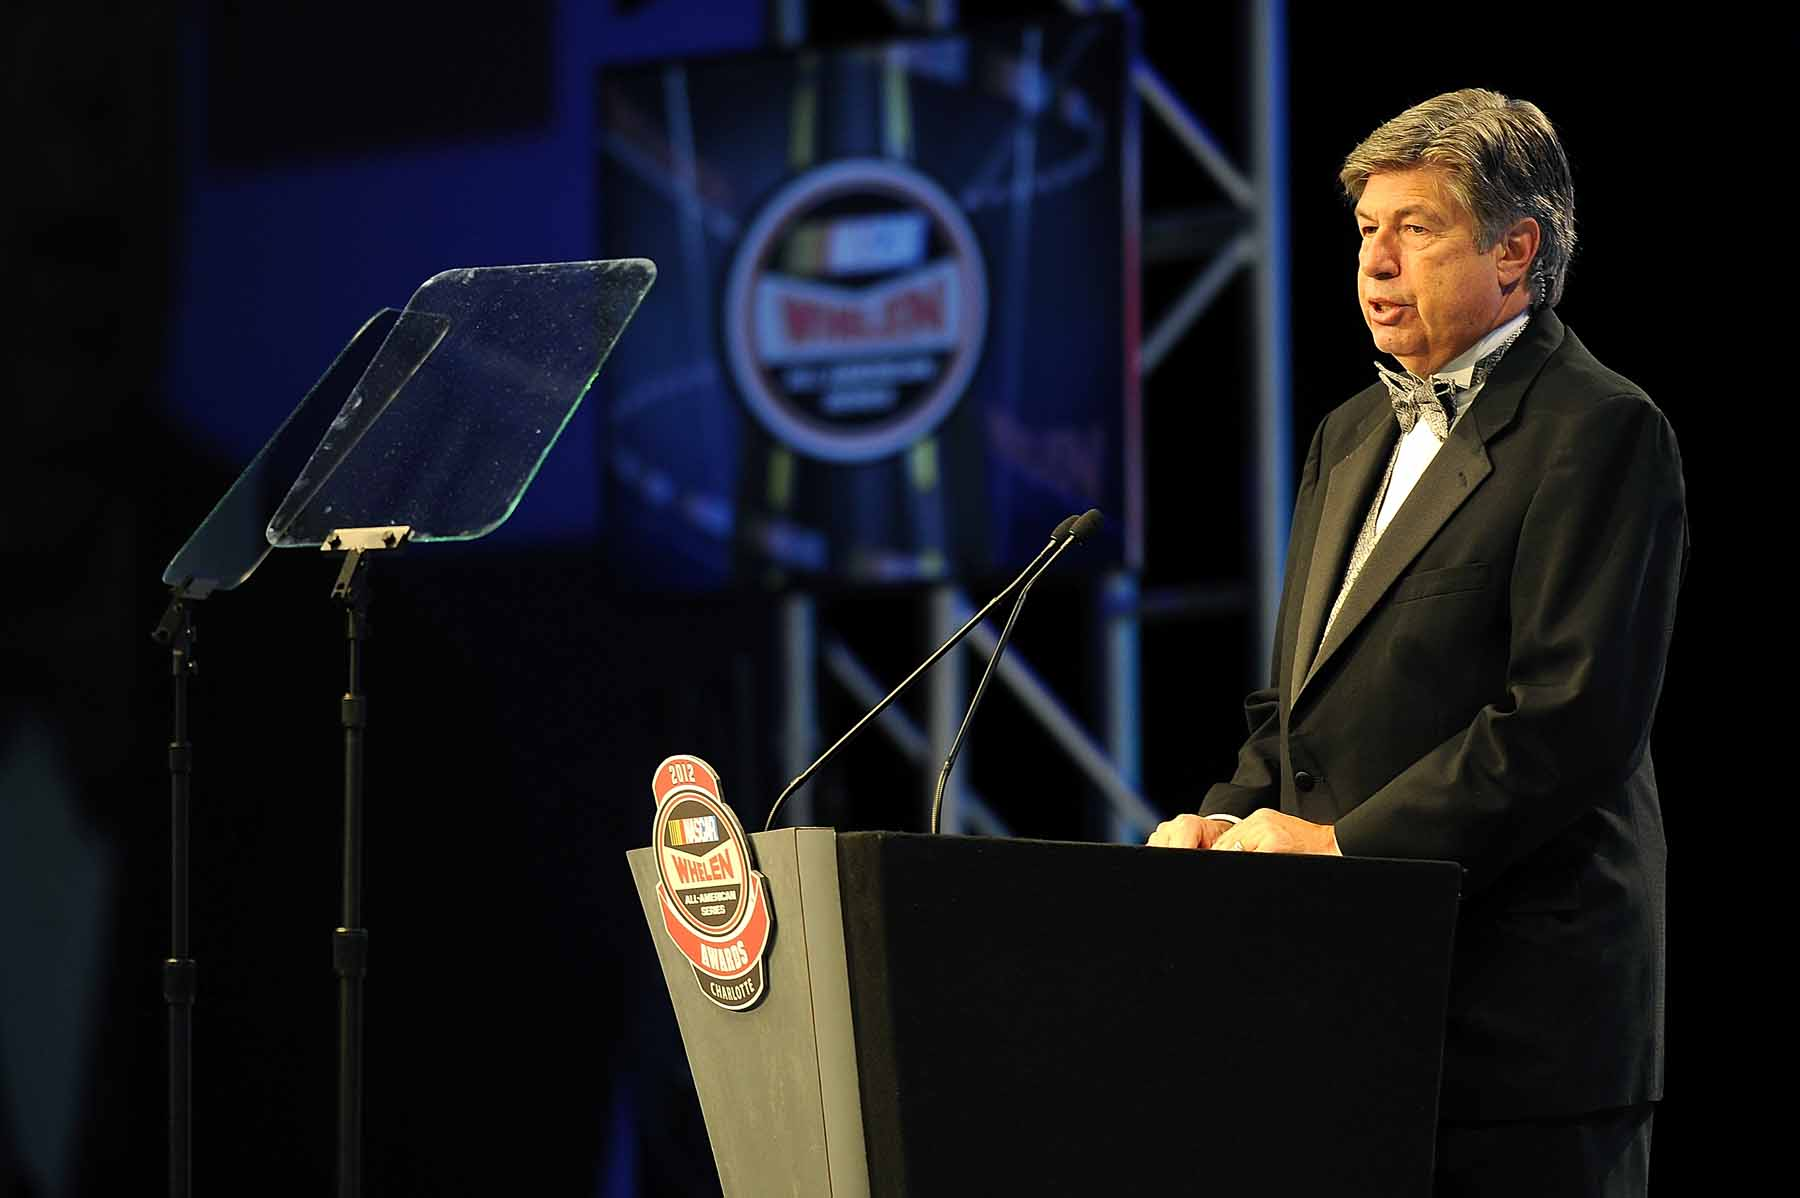 The latest Hagerty Sidedrafts podcast features NASCAR announcer Mike Joy thumbnail